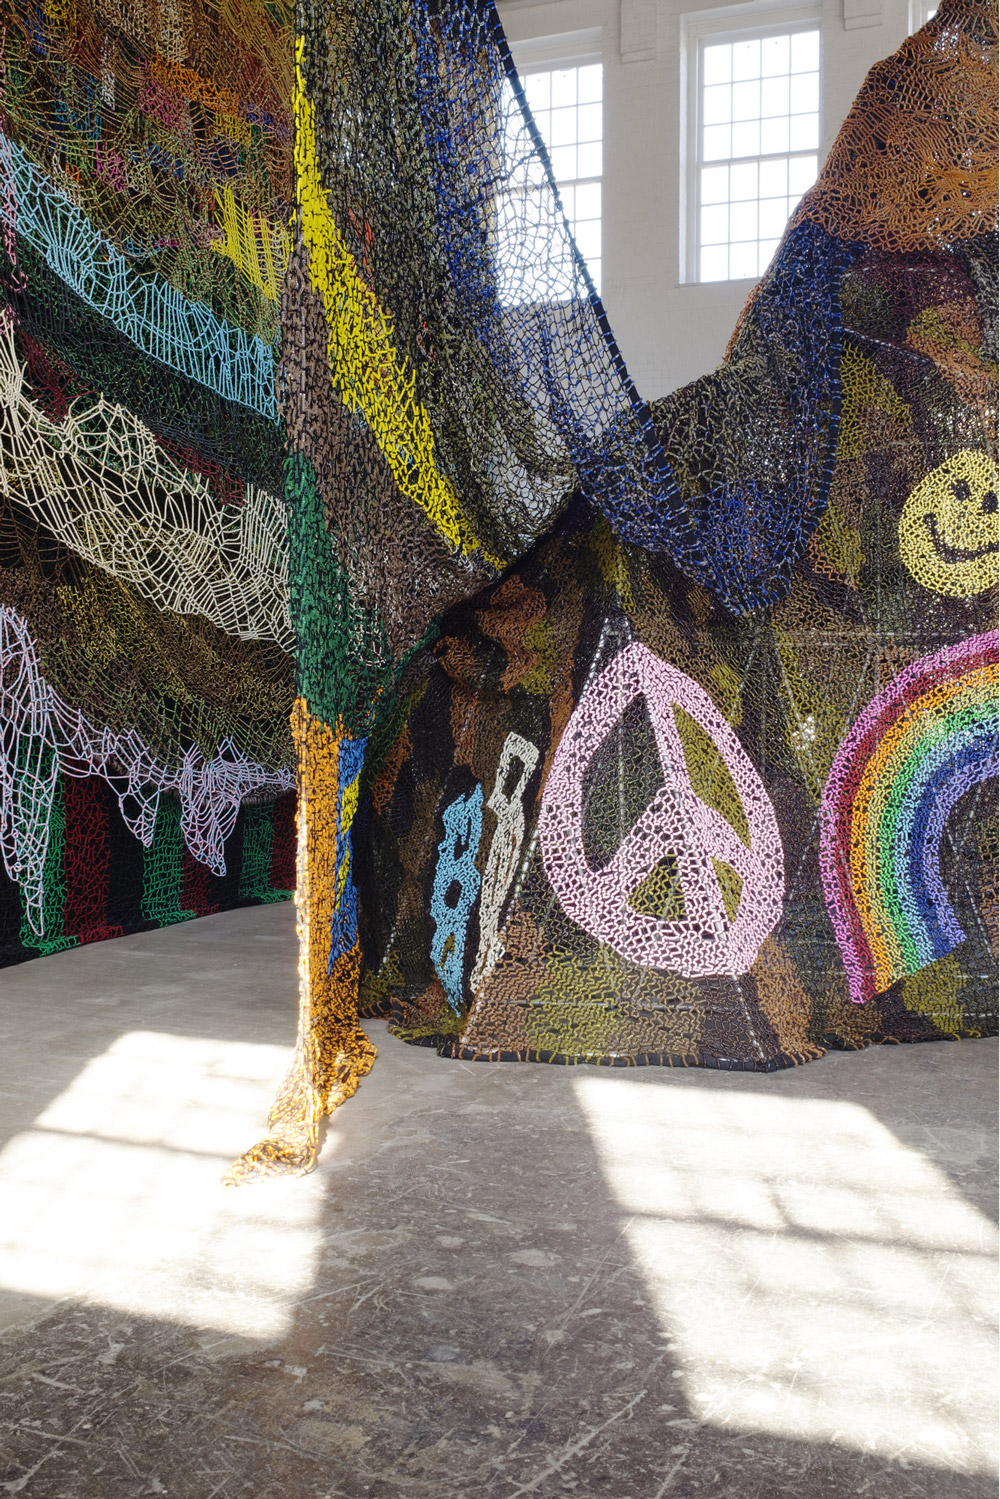 Tens of Thousands of Metallic Lawn Ornaments Glisten Inside Nick Cave's Monumental Installation at MASS MoCA